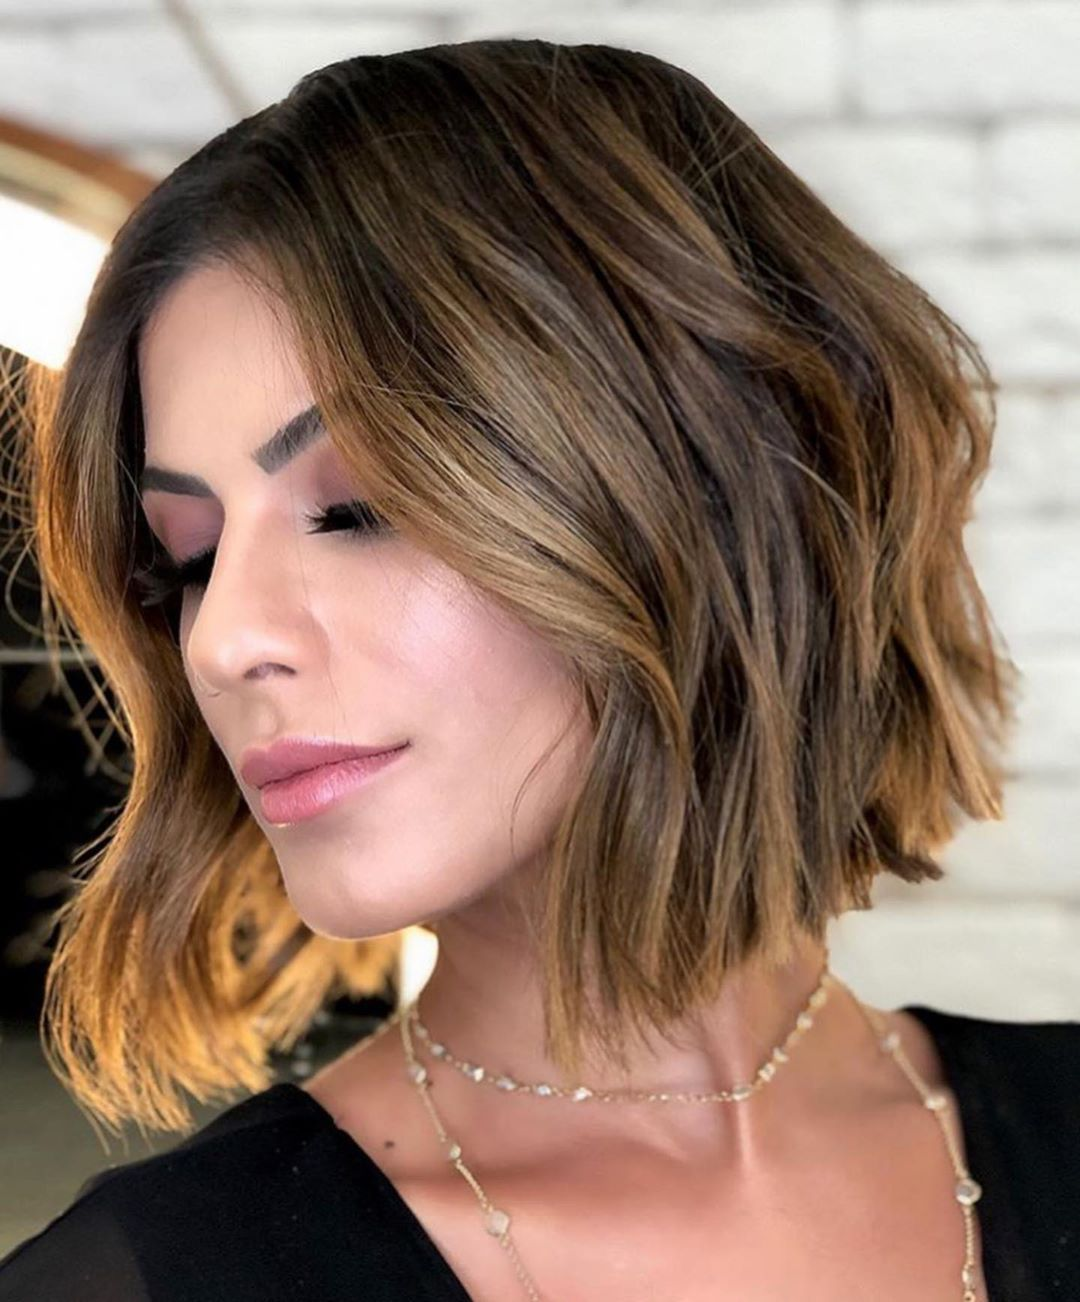 40 Hottest Ombre Hair Color Ideas 2021 Short Medium Long Hair Pretty Designs Long Hair Styles Ombre Hair Color Grey Ombre Hair